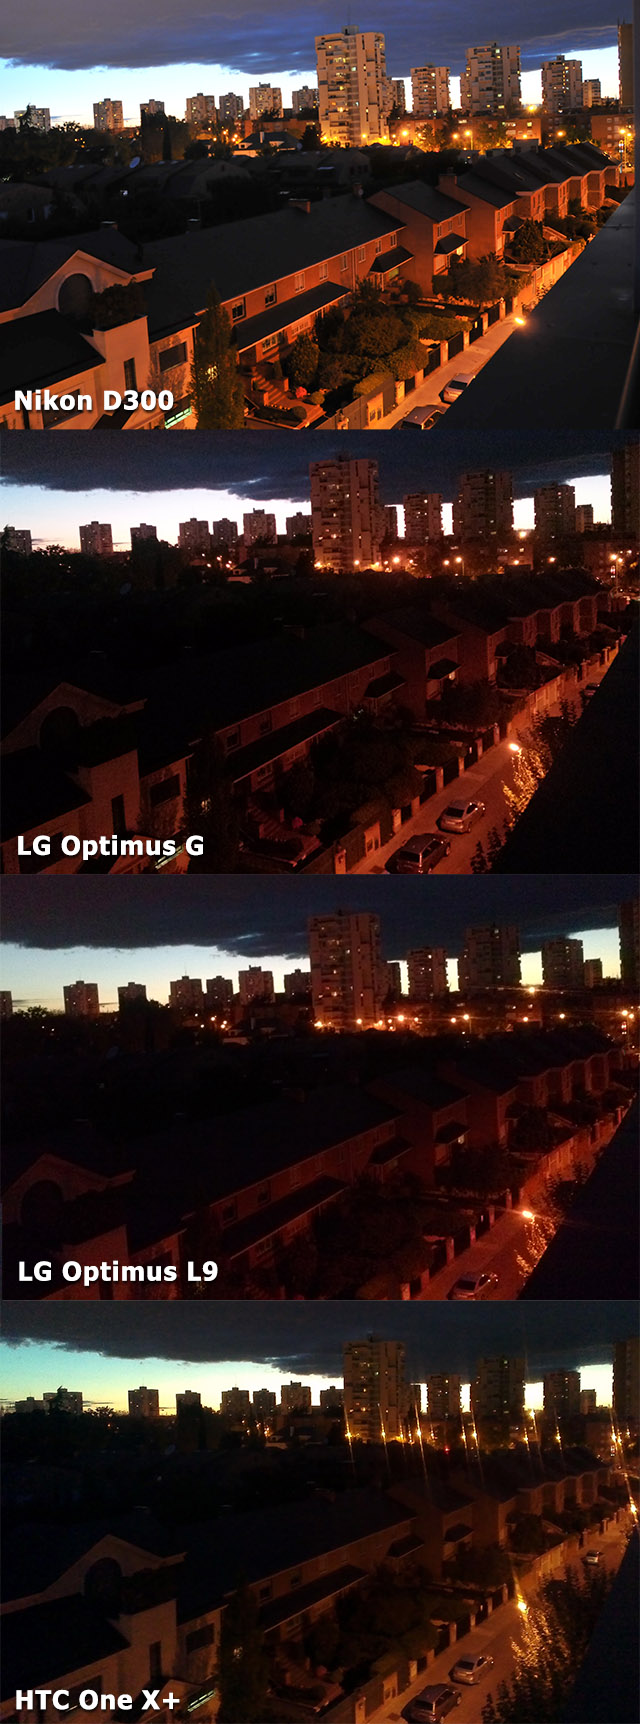 Comparativa Optimus G, Optimus L9, HTC One X+ y Nikon D300